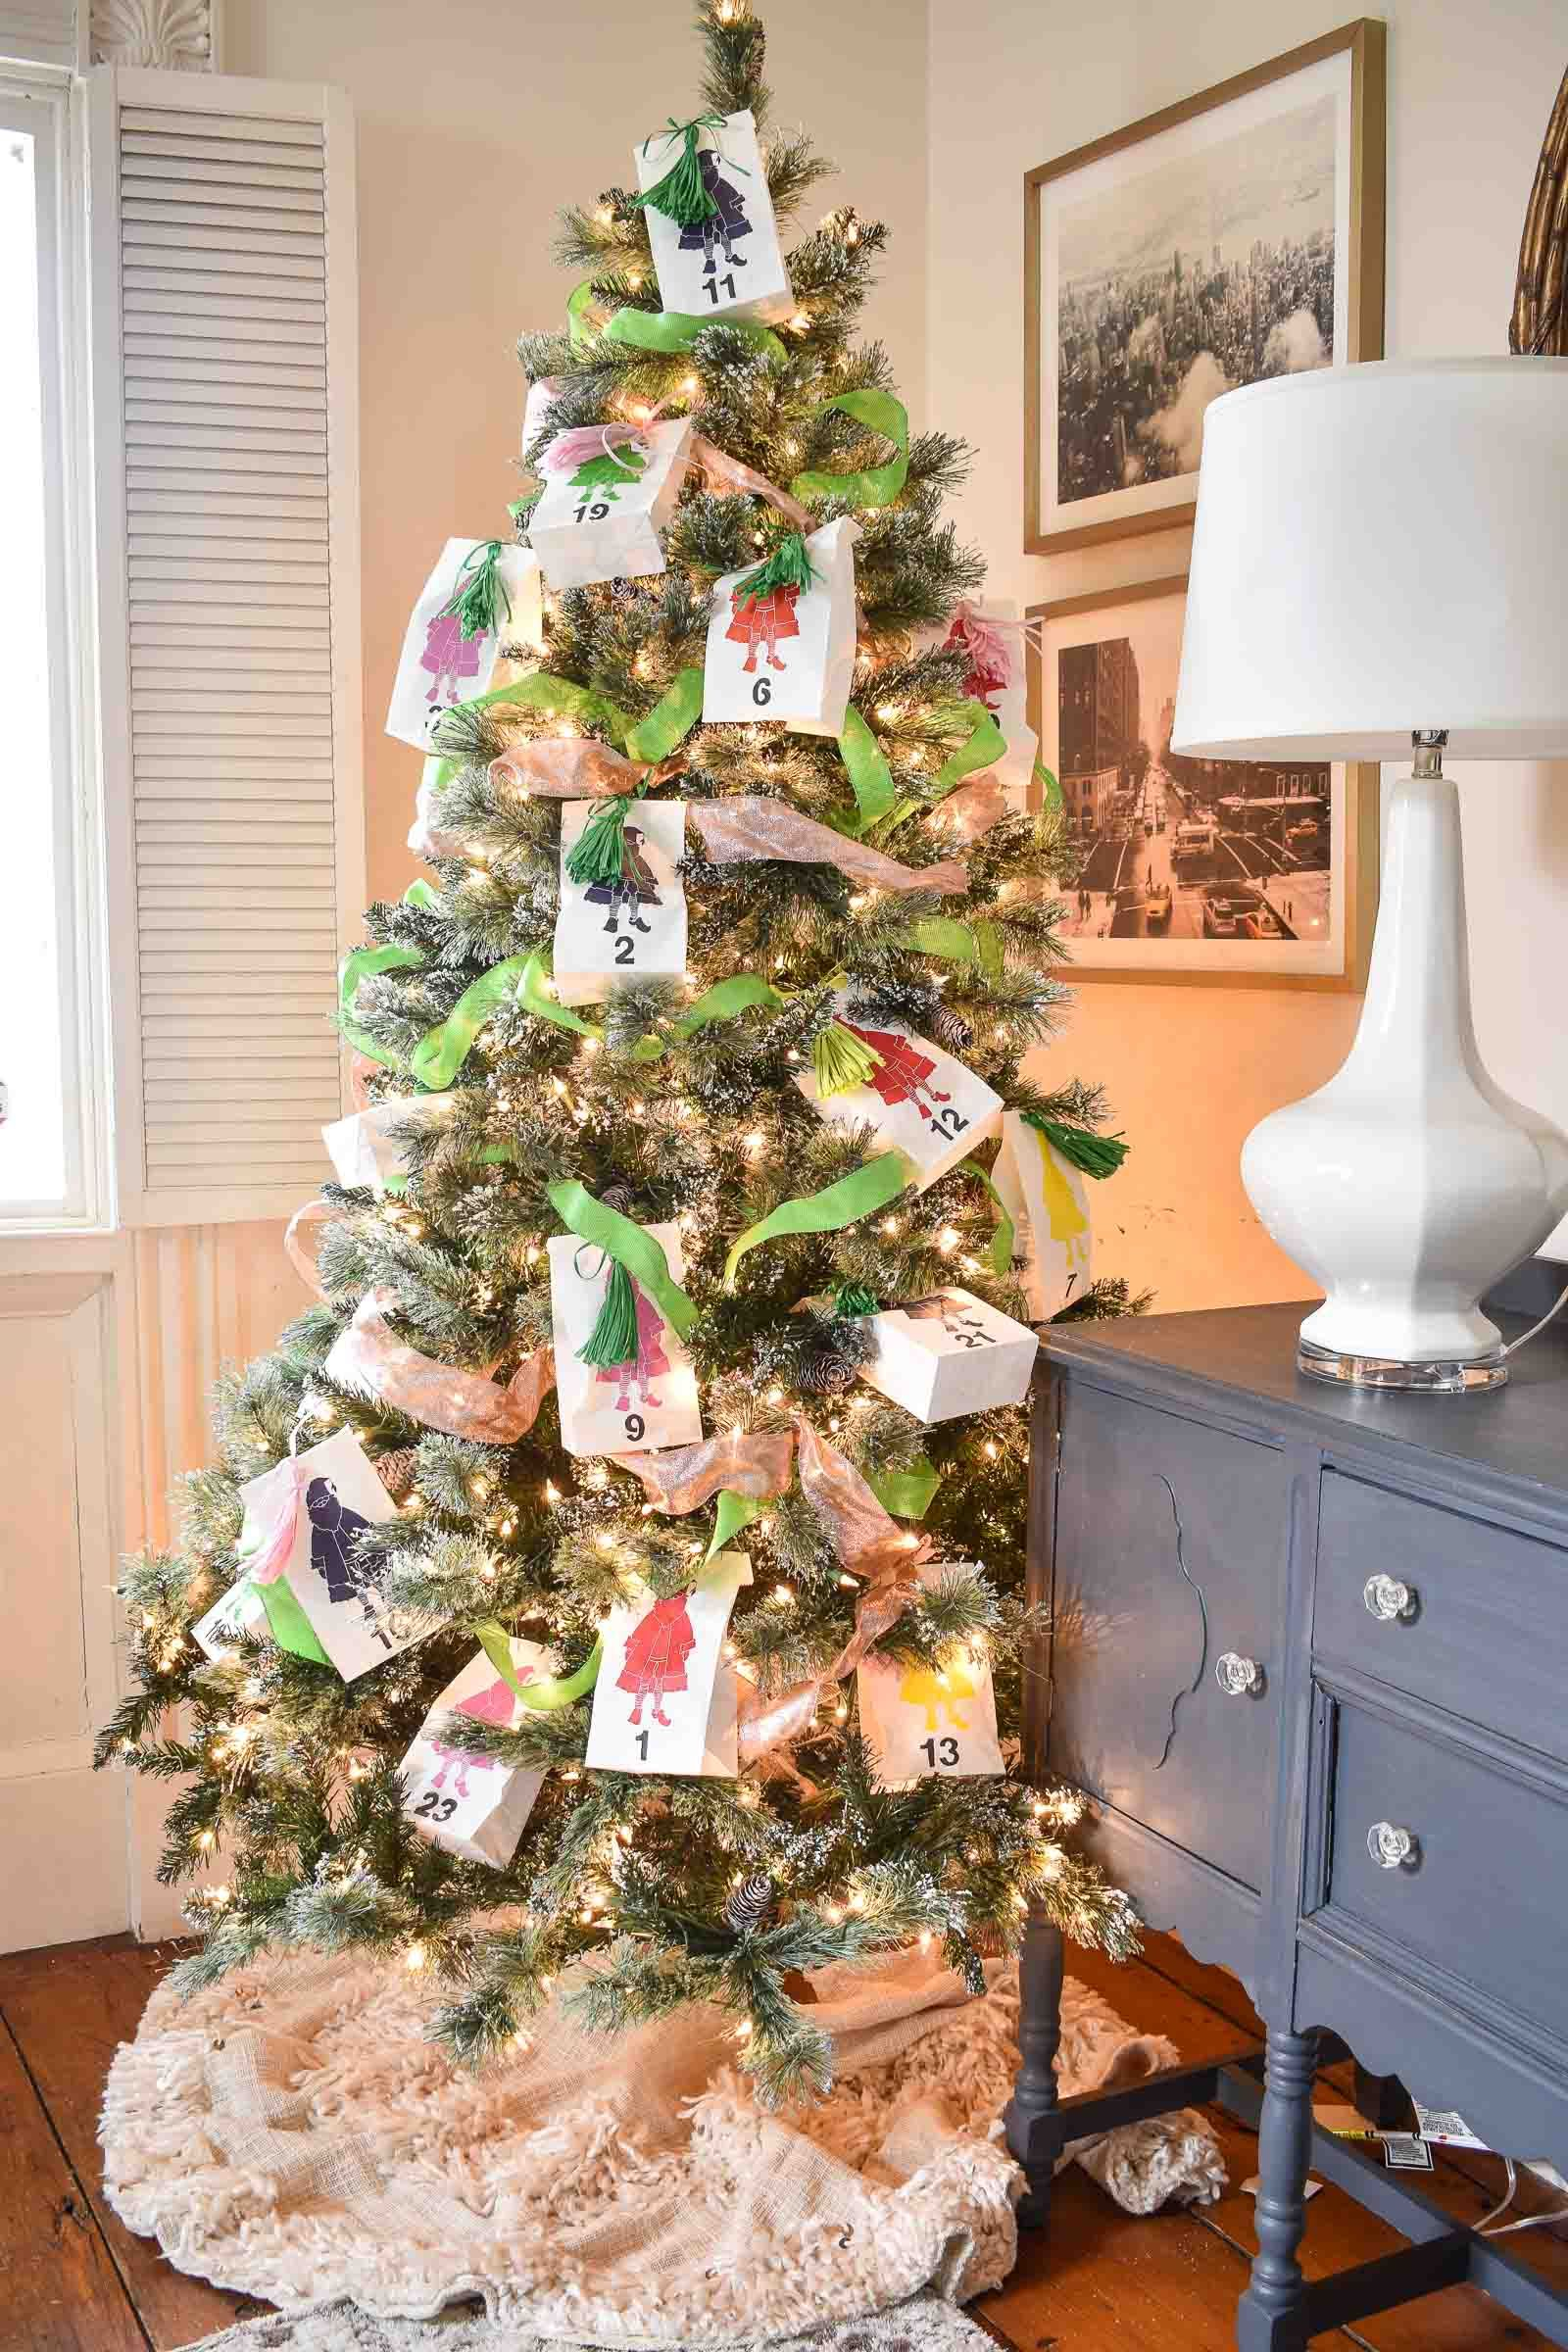 This Advent Calendar Christmas Tree Is So Easy To Set Up And It S One Of My Kids Favorite Thi Christmas Advent Diy Christmas Ornaments Christmas Tree Ornaments